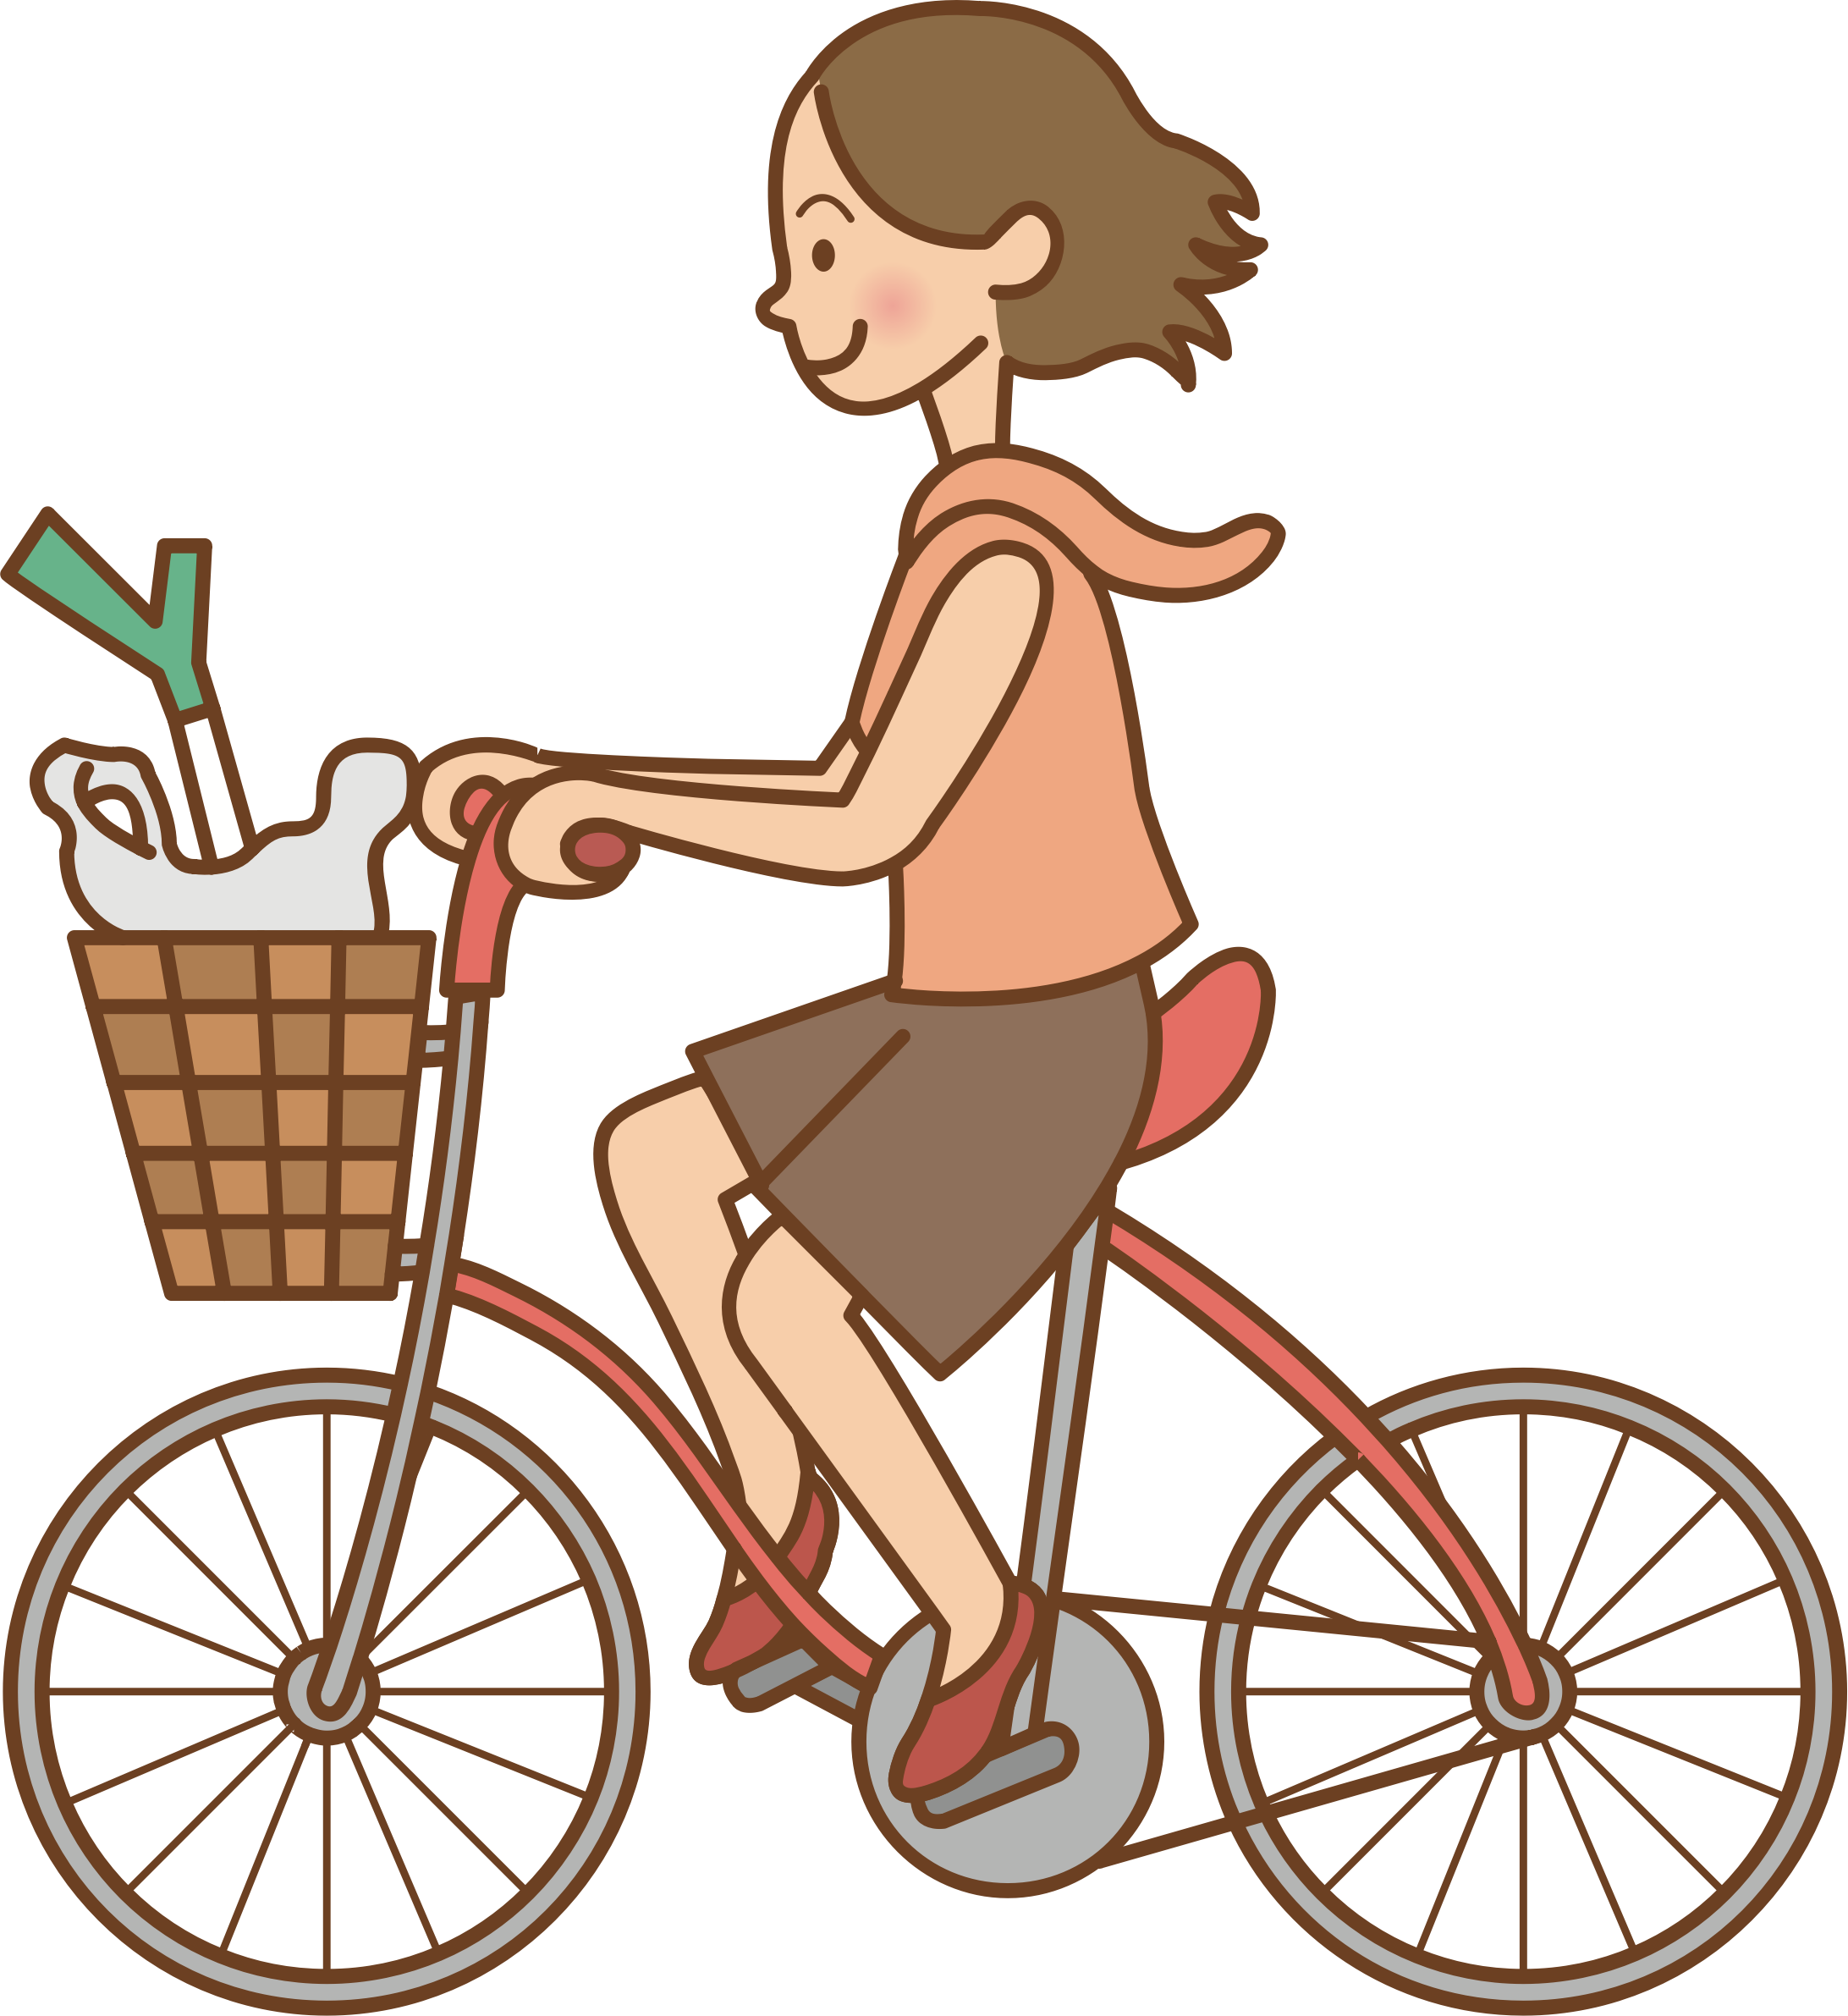 Cycle clipart female cyclist. Woman riding a bicycle